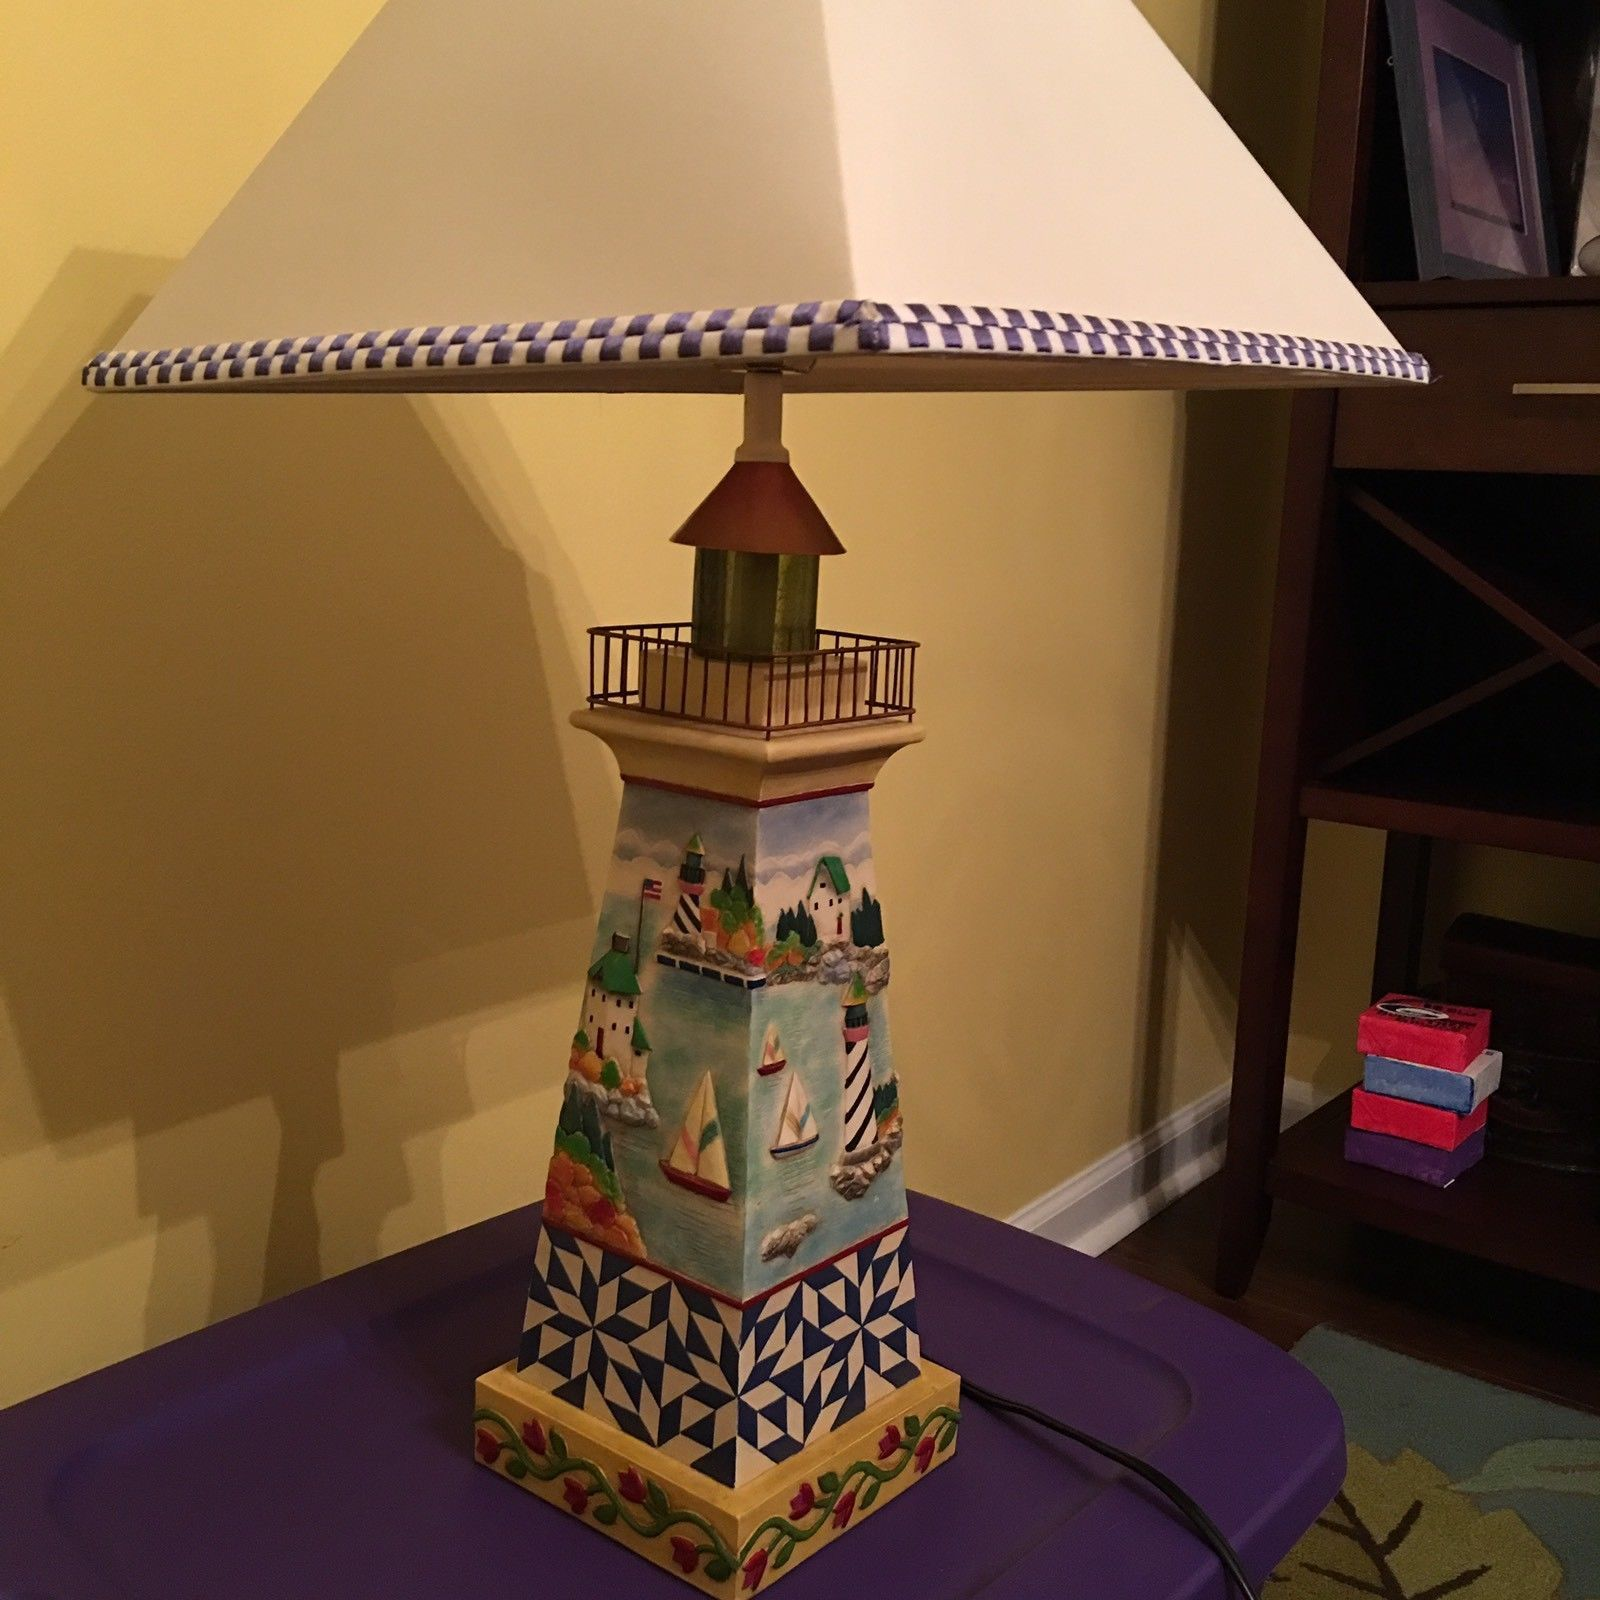 This listing is for an excellent condition 2004 jim shore this listing is for an excellent condition 2004 jim shore lighthouse lamp there are no chips or imperfections in the base the lamp shade is also in great mozeypictures Choice Image